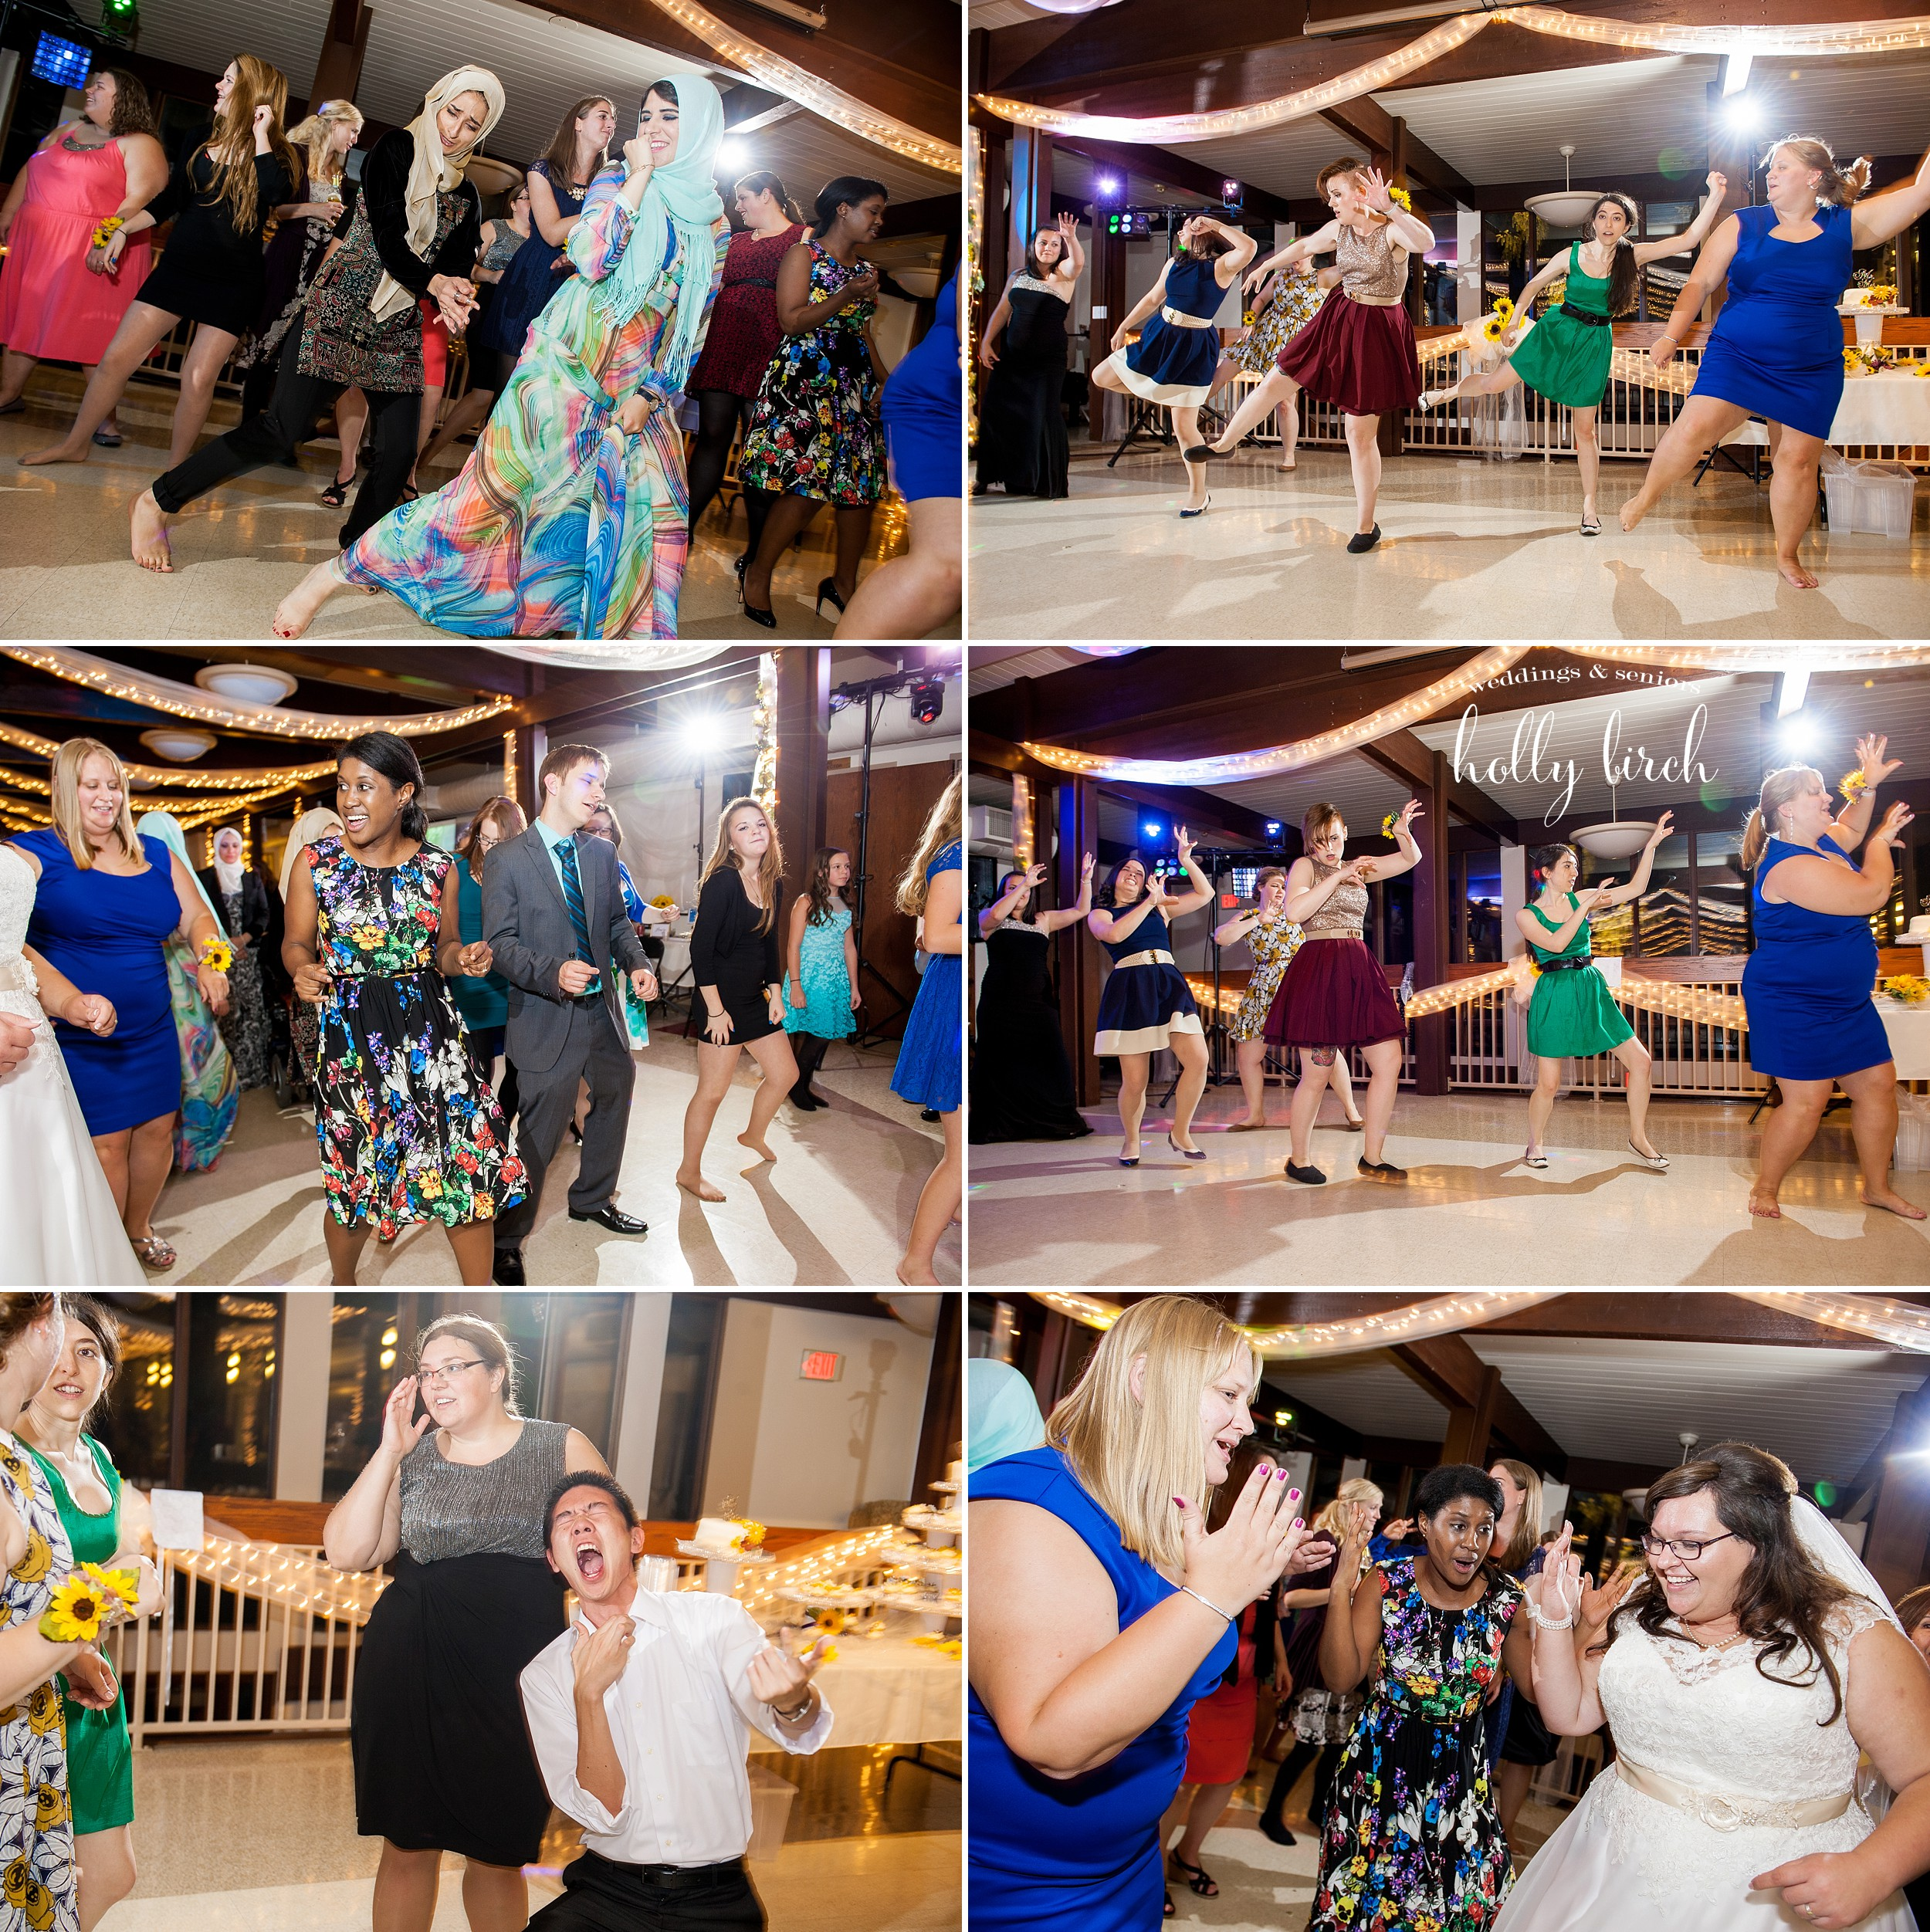 dancing to Thriller at wedding